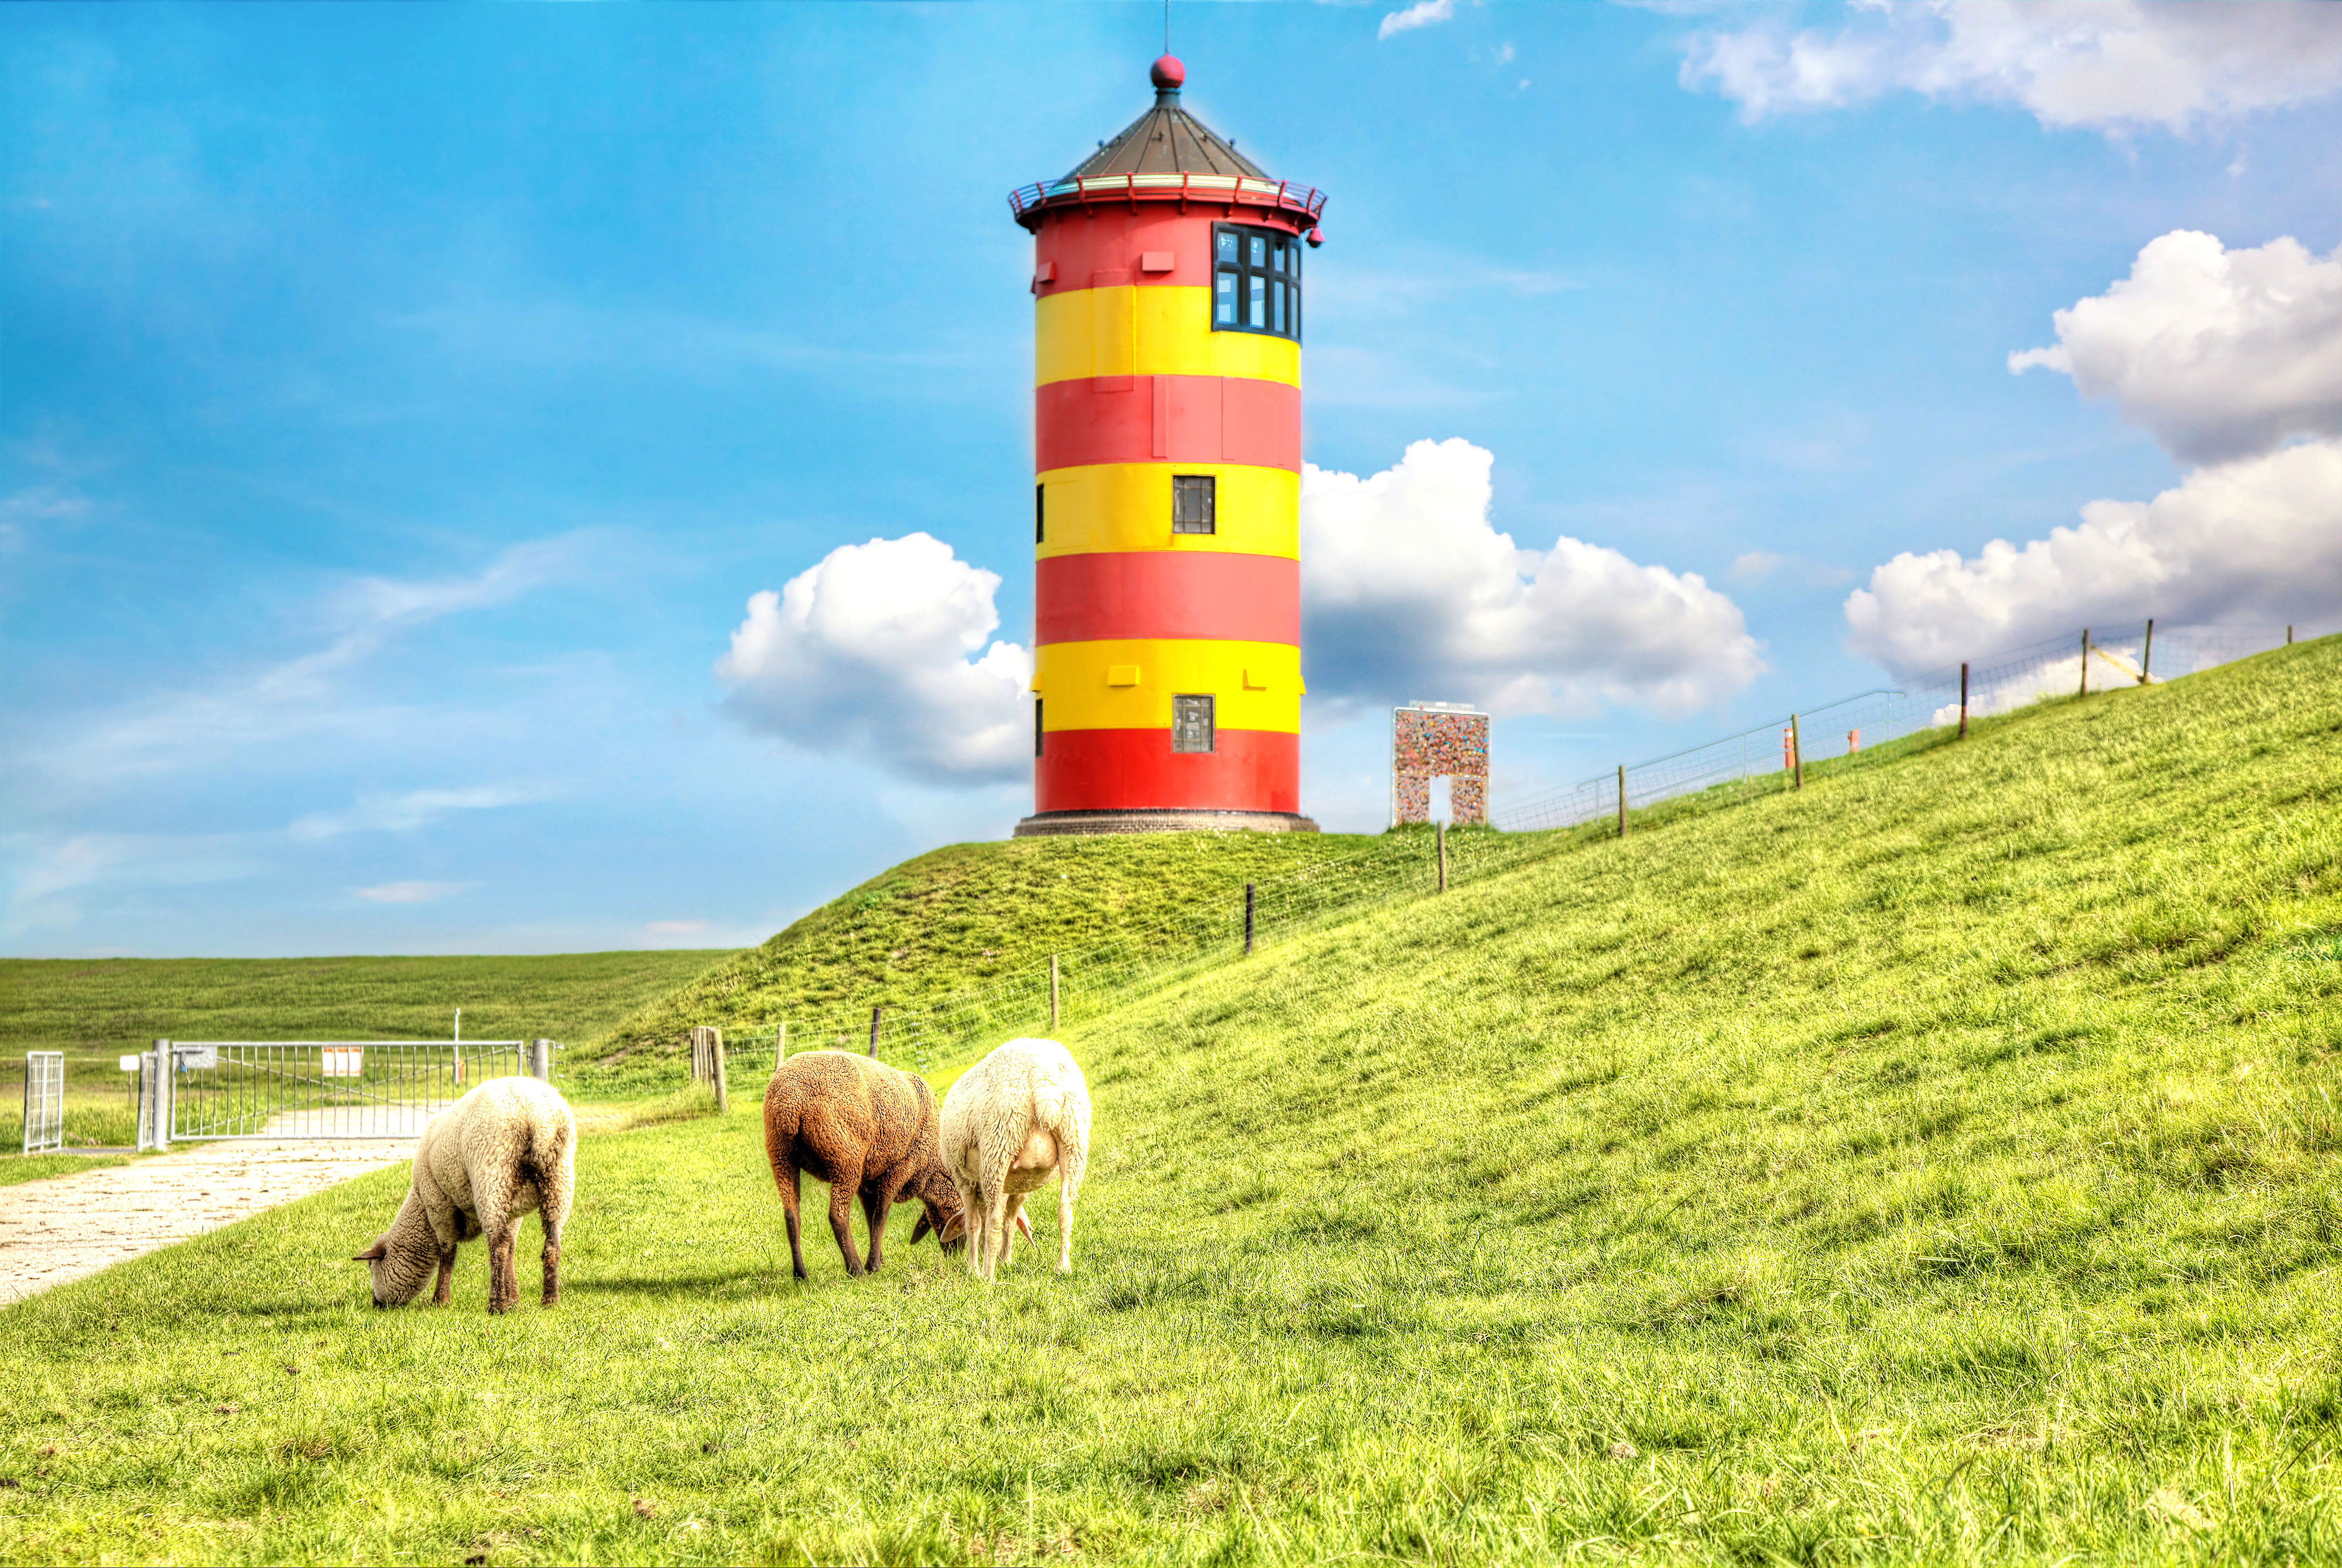 https://assets.eberhardt-travel.de/2019/Deutschland/68027_Sheep_in_front_of_the_Pilsum_lighthouse_on_the_North_Sea_coast_o_Original.jpg